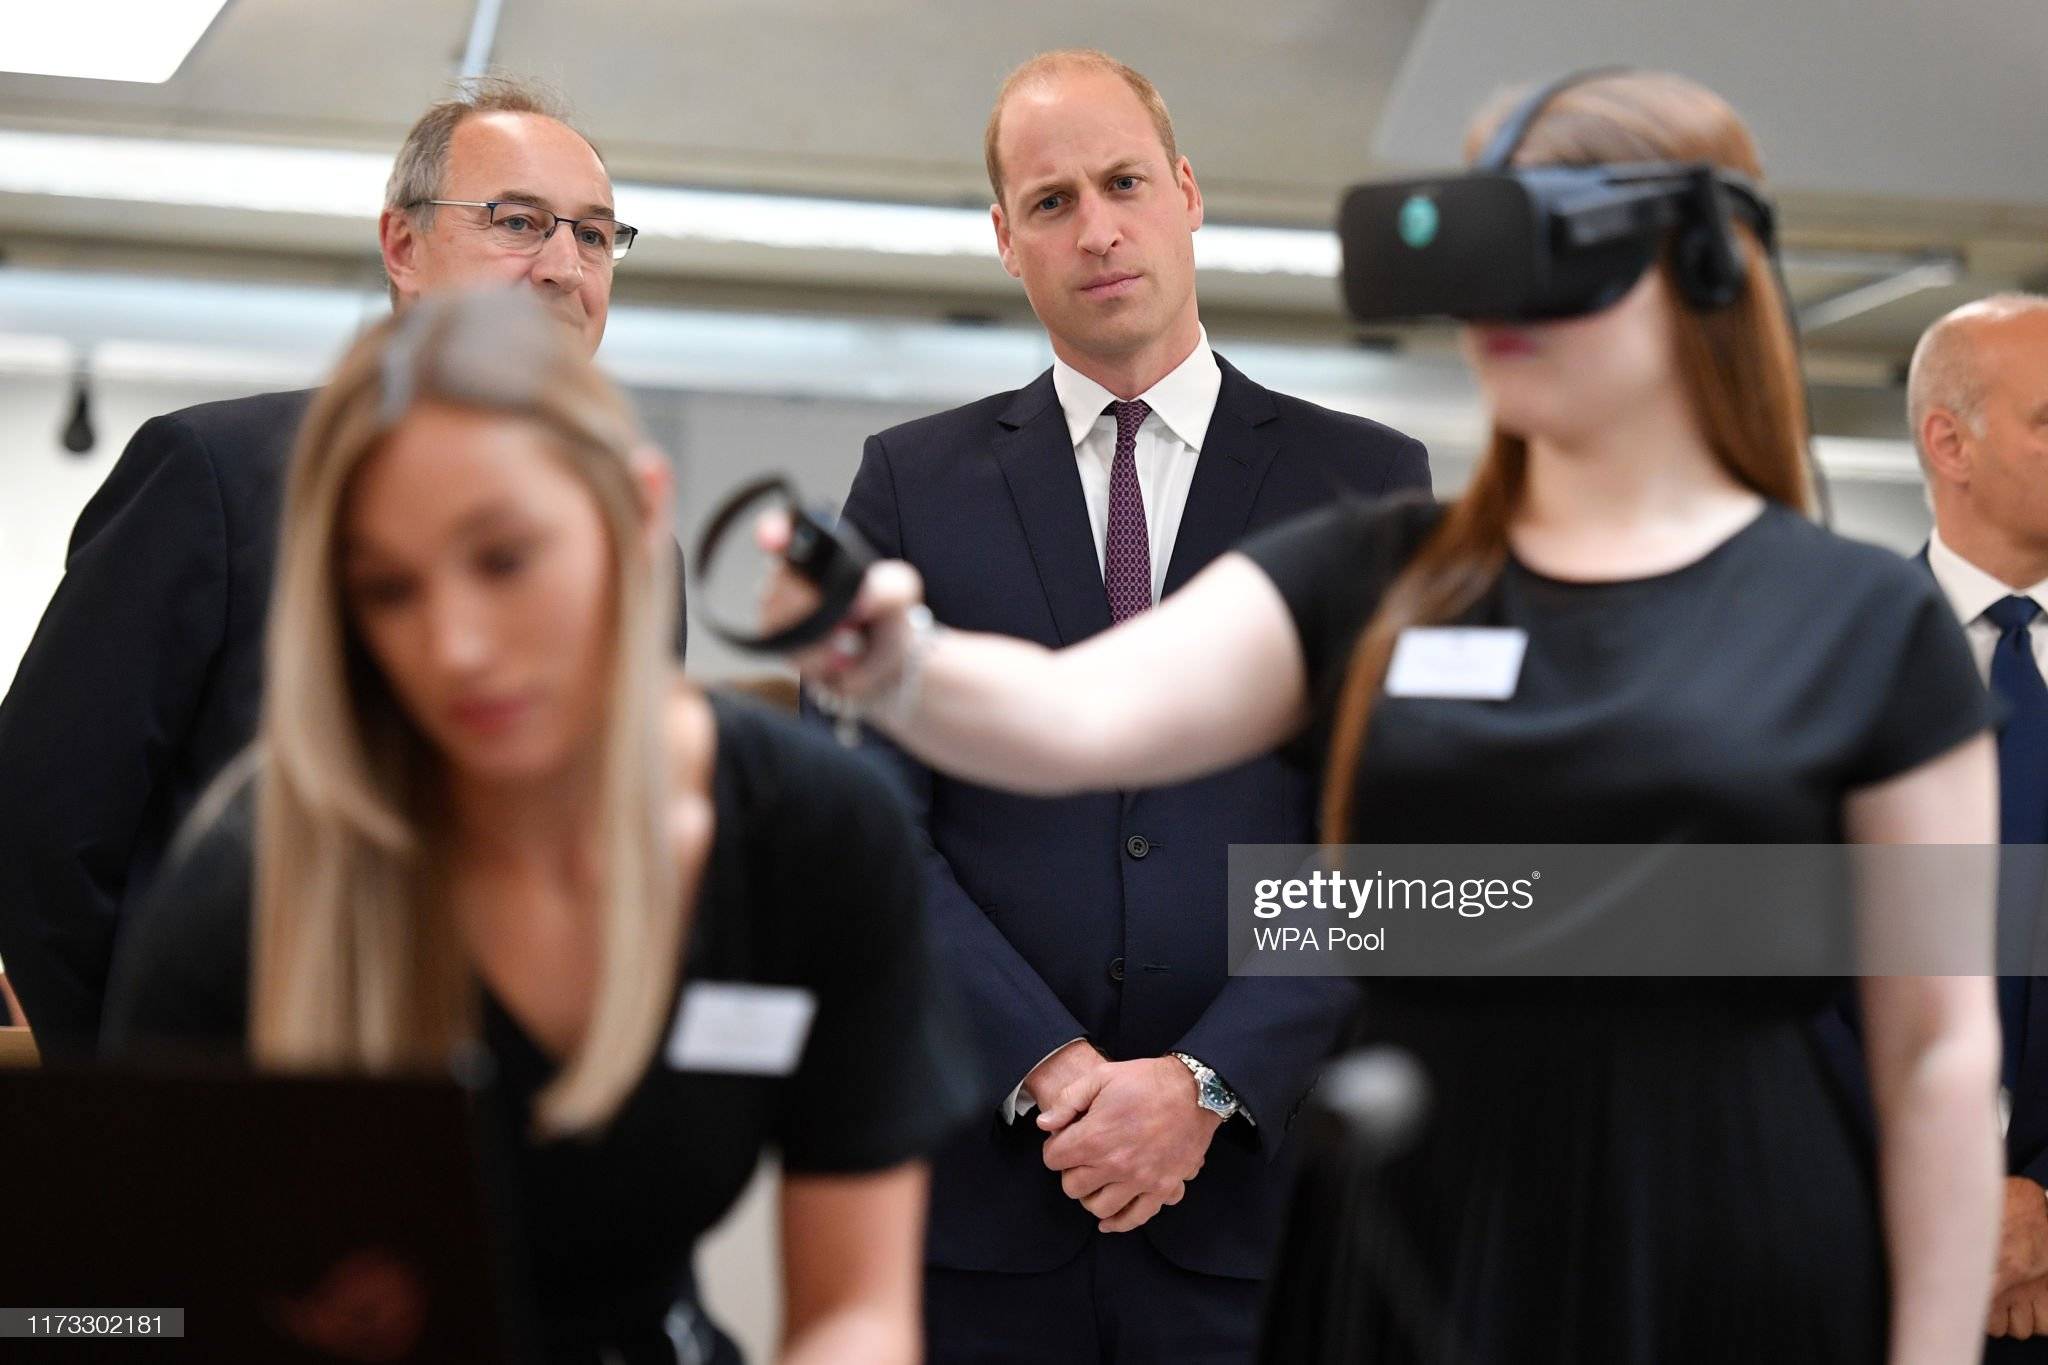 prince-william-duke-of-cambridge-watches-a-virtual-reality-for-a-picture-id1173302181